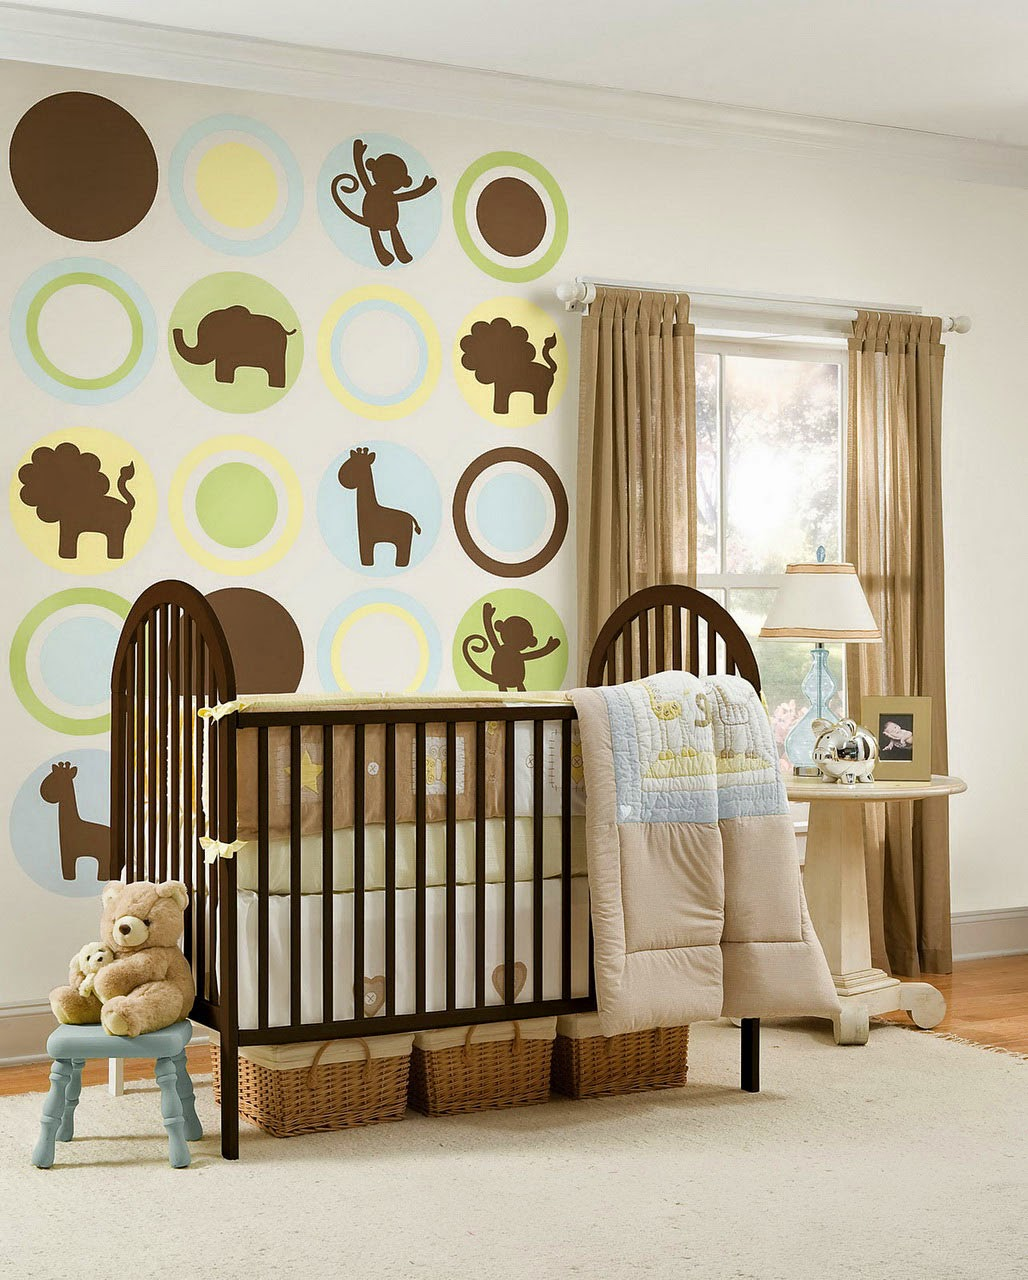 Brown curtains in bedroom - Brown Curtains Ideas For Nursery Room Combine Brown With Bright Colors For The Baby Health